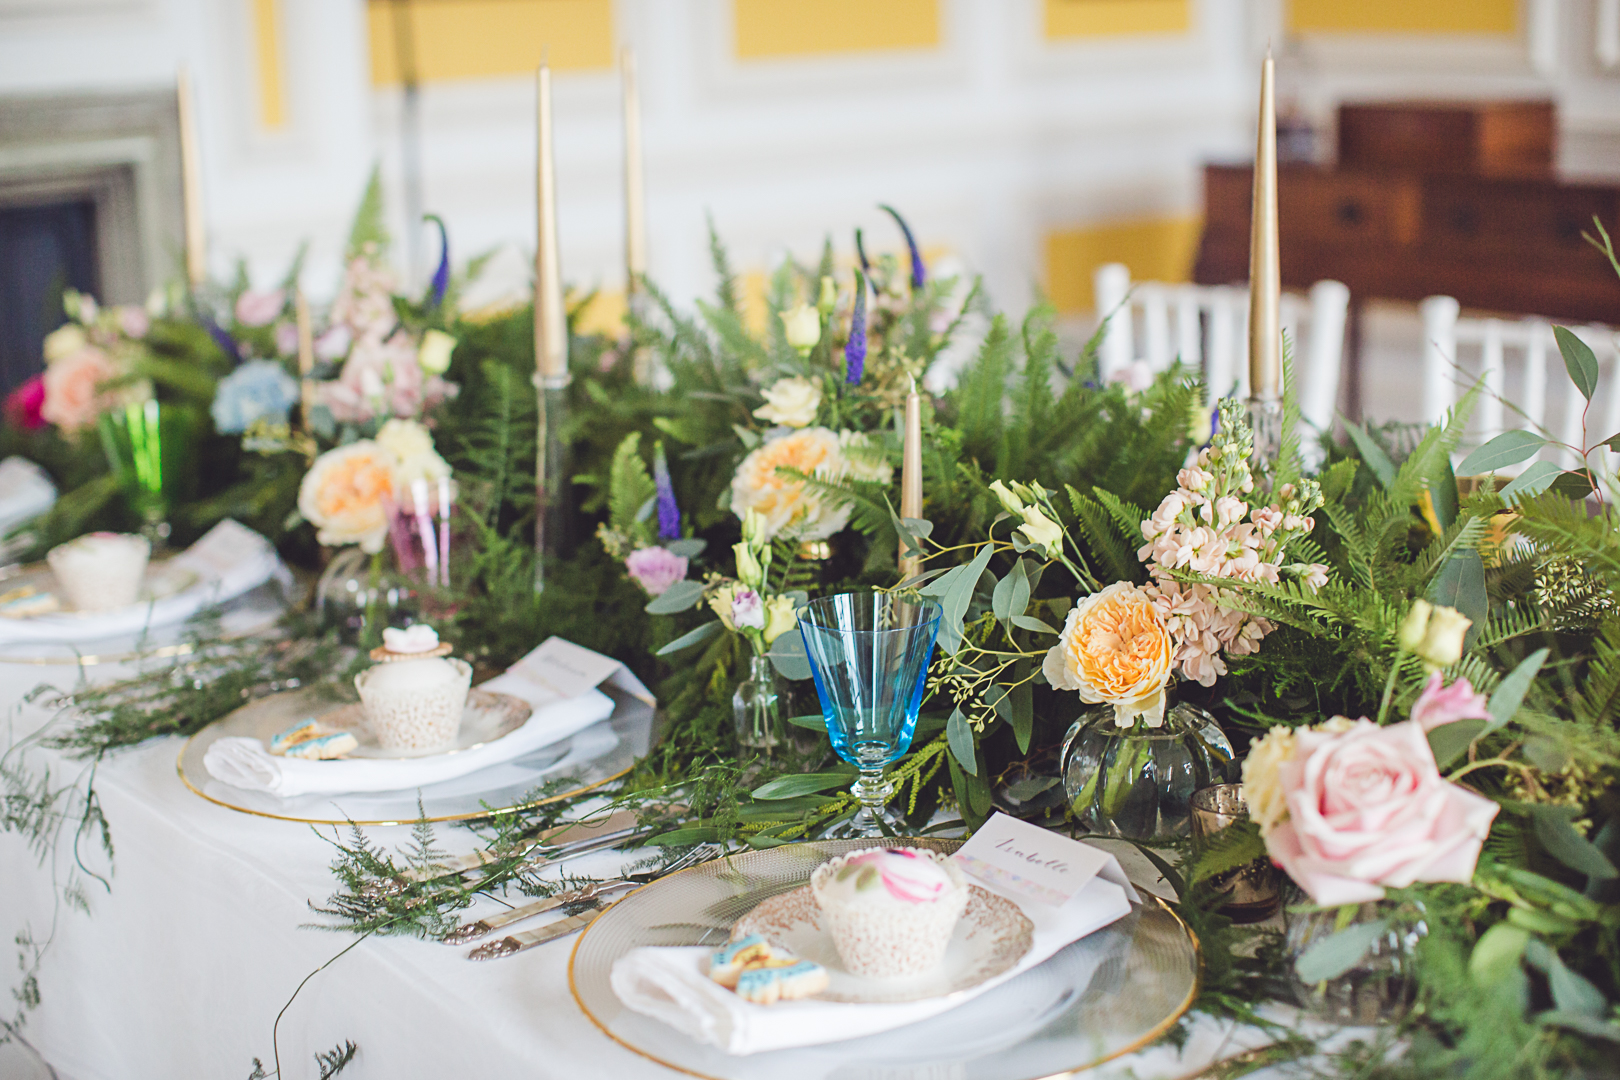 A cute cupcake & cookie table favour with beautiful gold and glass chargers mix with fresh foliage in our dramatic table runner